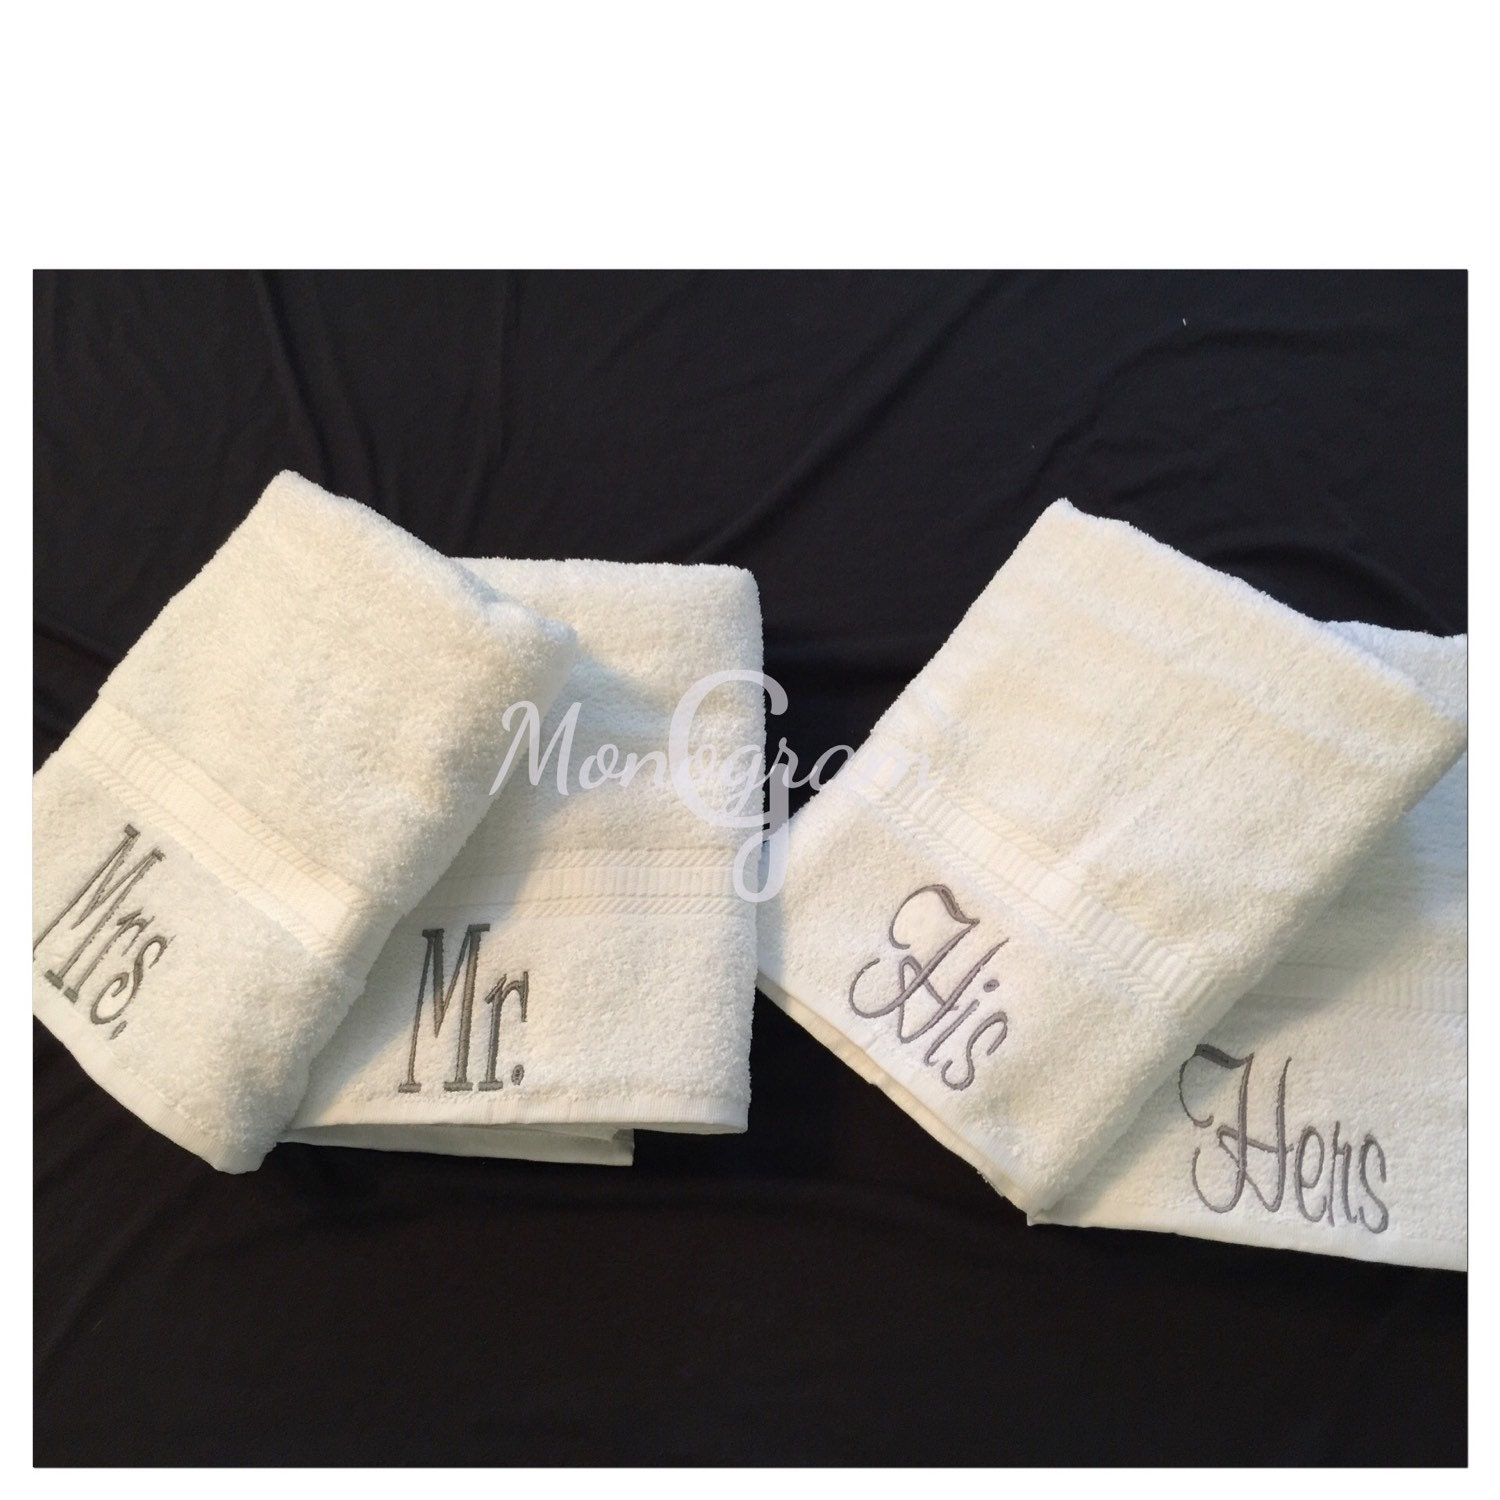 Monogram Towels For Bathroom: Monogram Towel Set/ Personalized Towels/ Bath Towels/